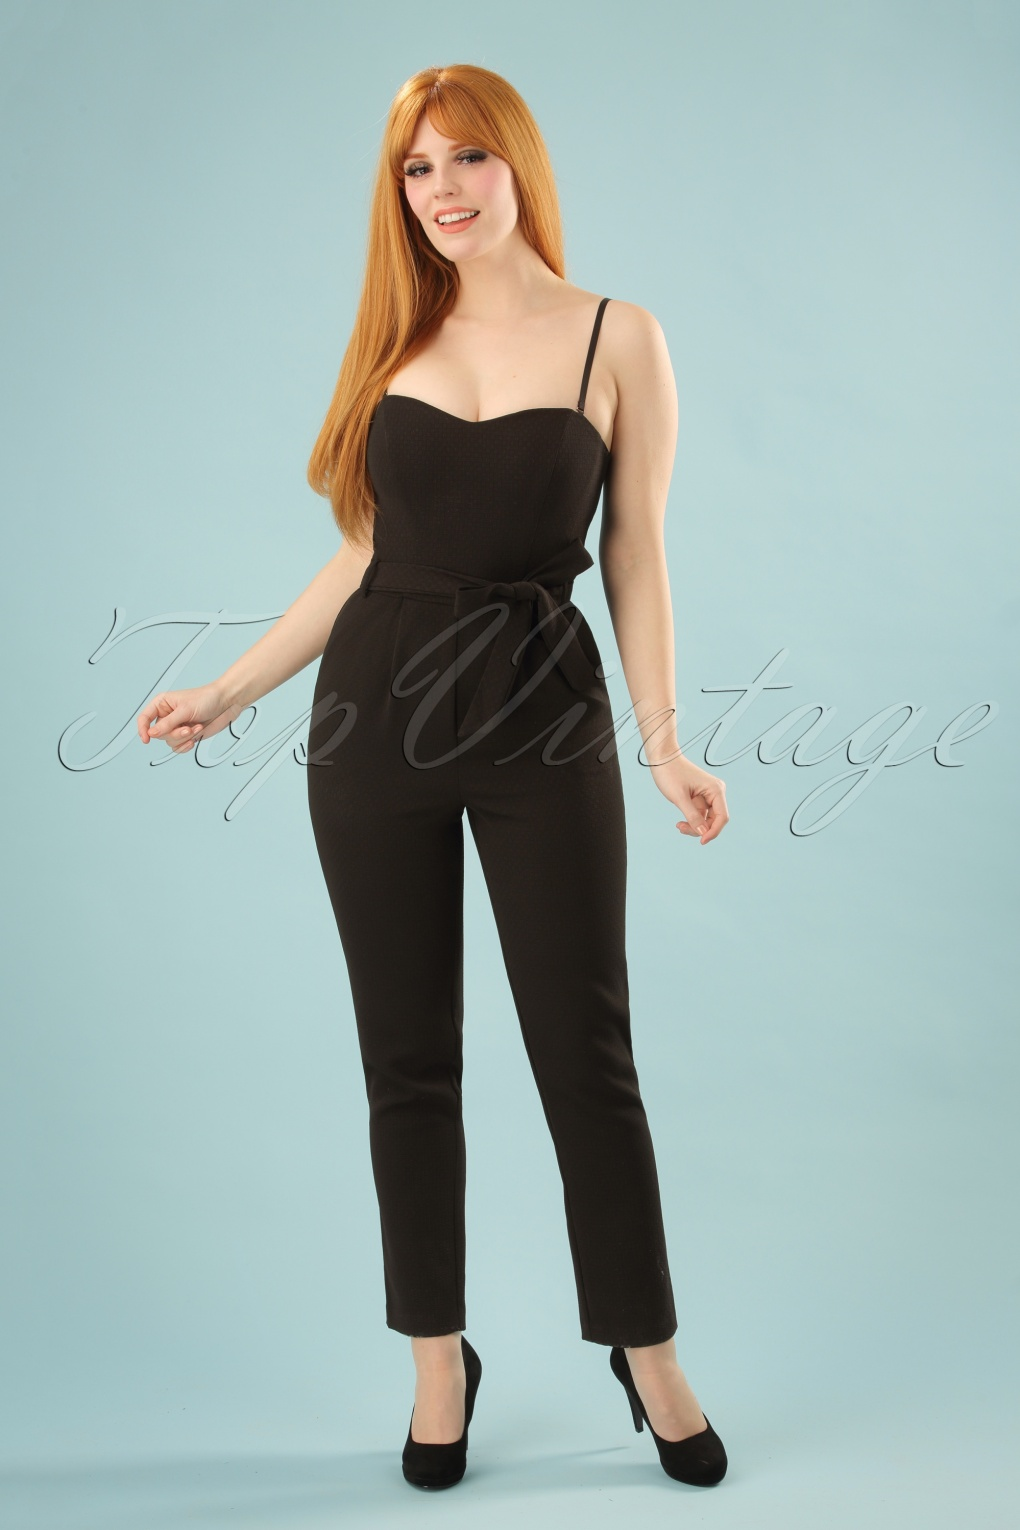 Vintage High Waisted Trousers, Sailor Pants, Jeans 70s Jessica Rabbit Who Jumpsuit in Black £104.98 AT vintagedancer.com